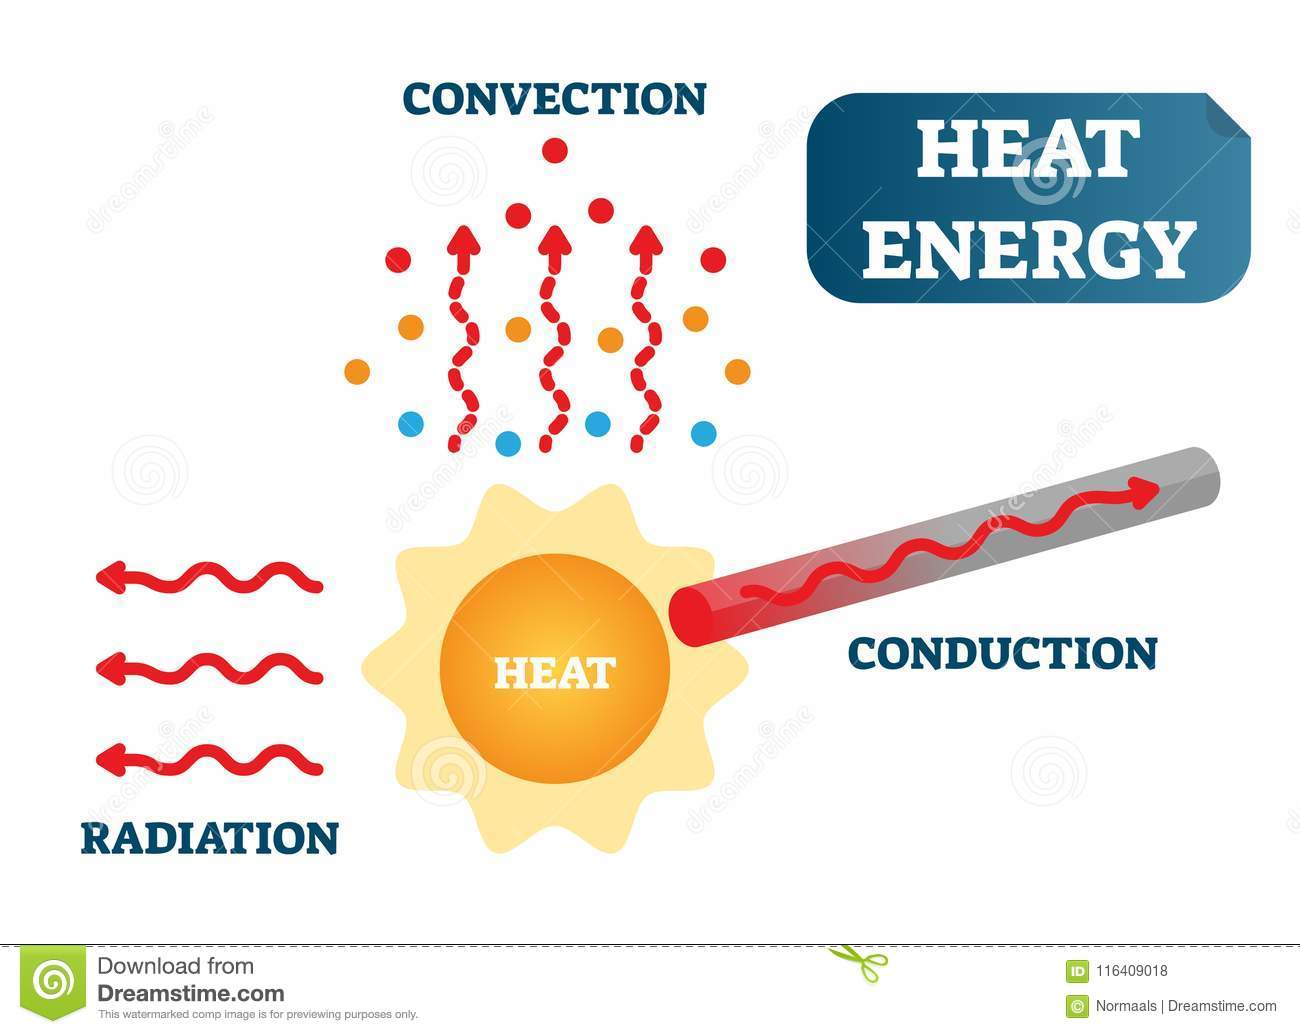 hight resolution of heat energy as convection conduction and radiation physics science vector illustration poster diagram